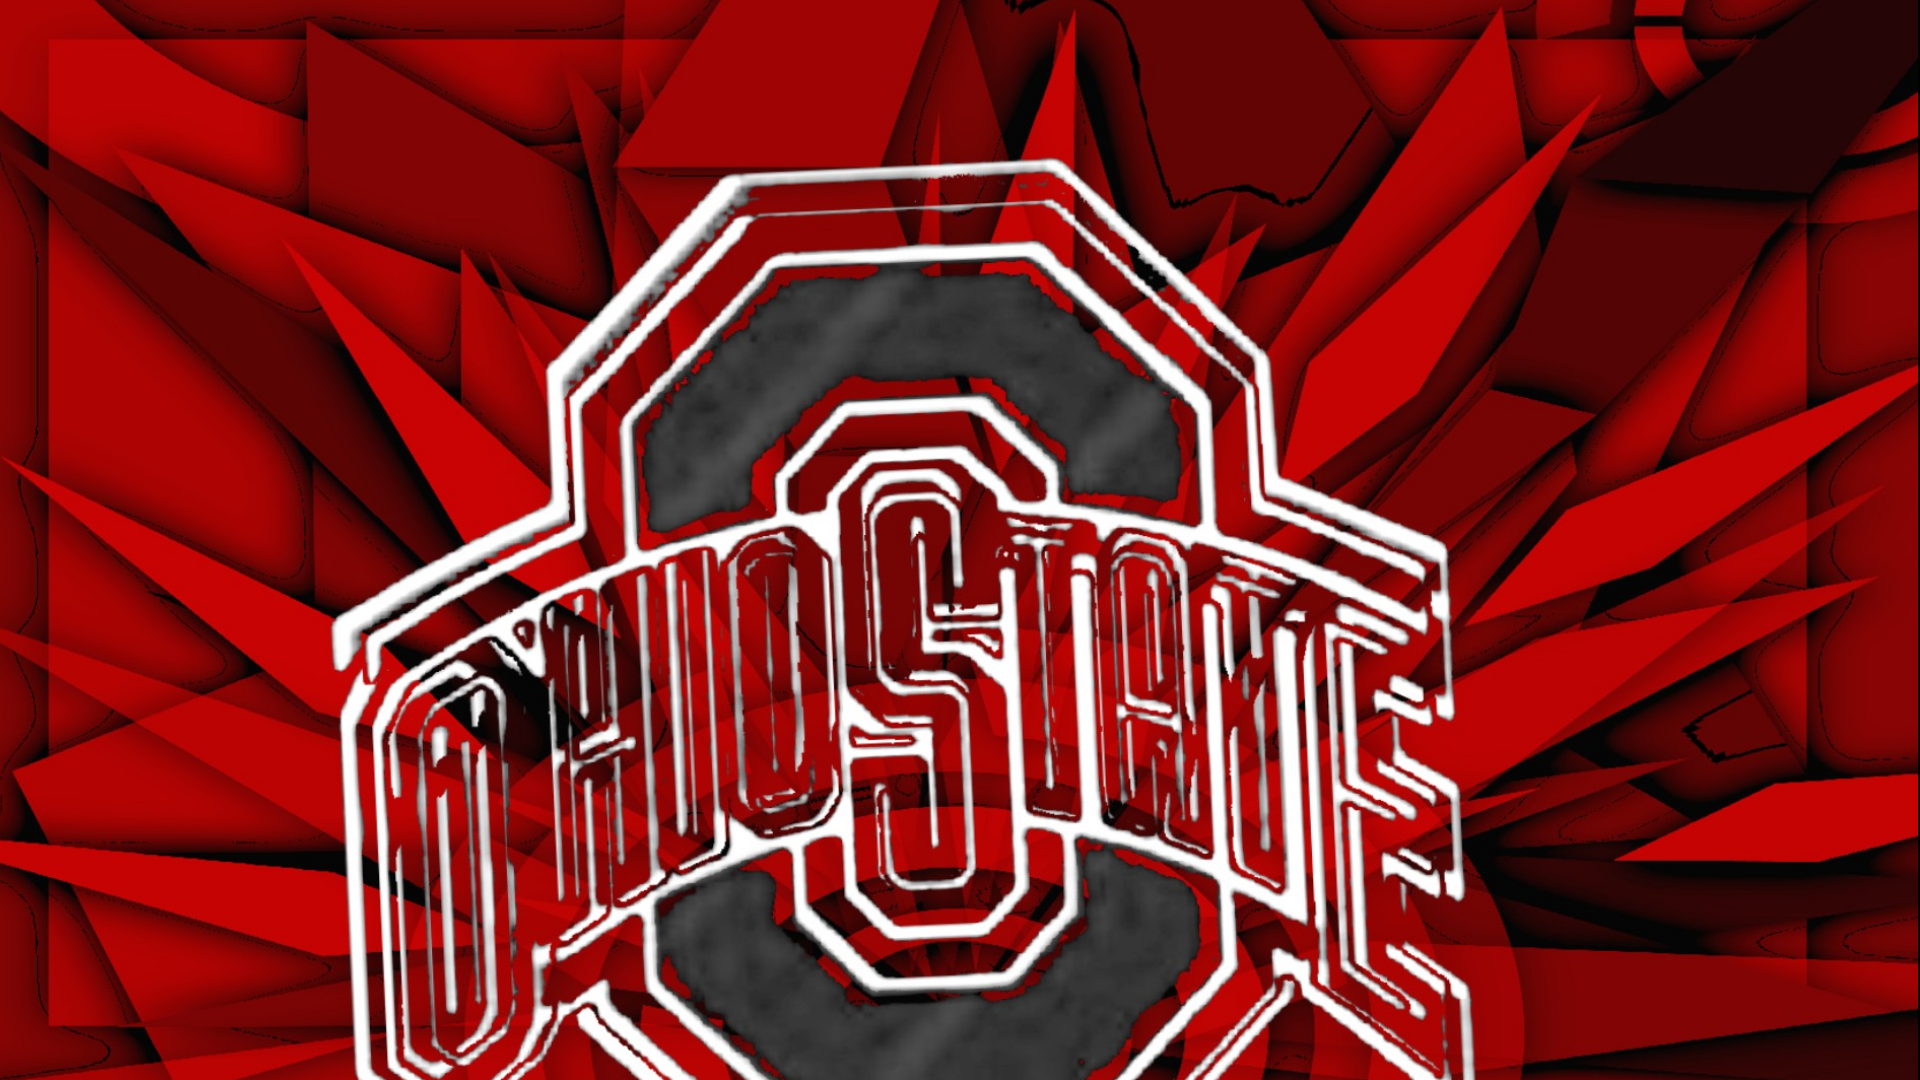 Ohio State Buckeyes Images OHIO STATE GRAY BLOCK O HD Wallpaper And Background Photos